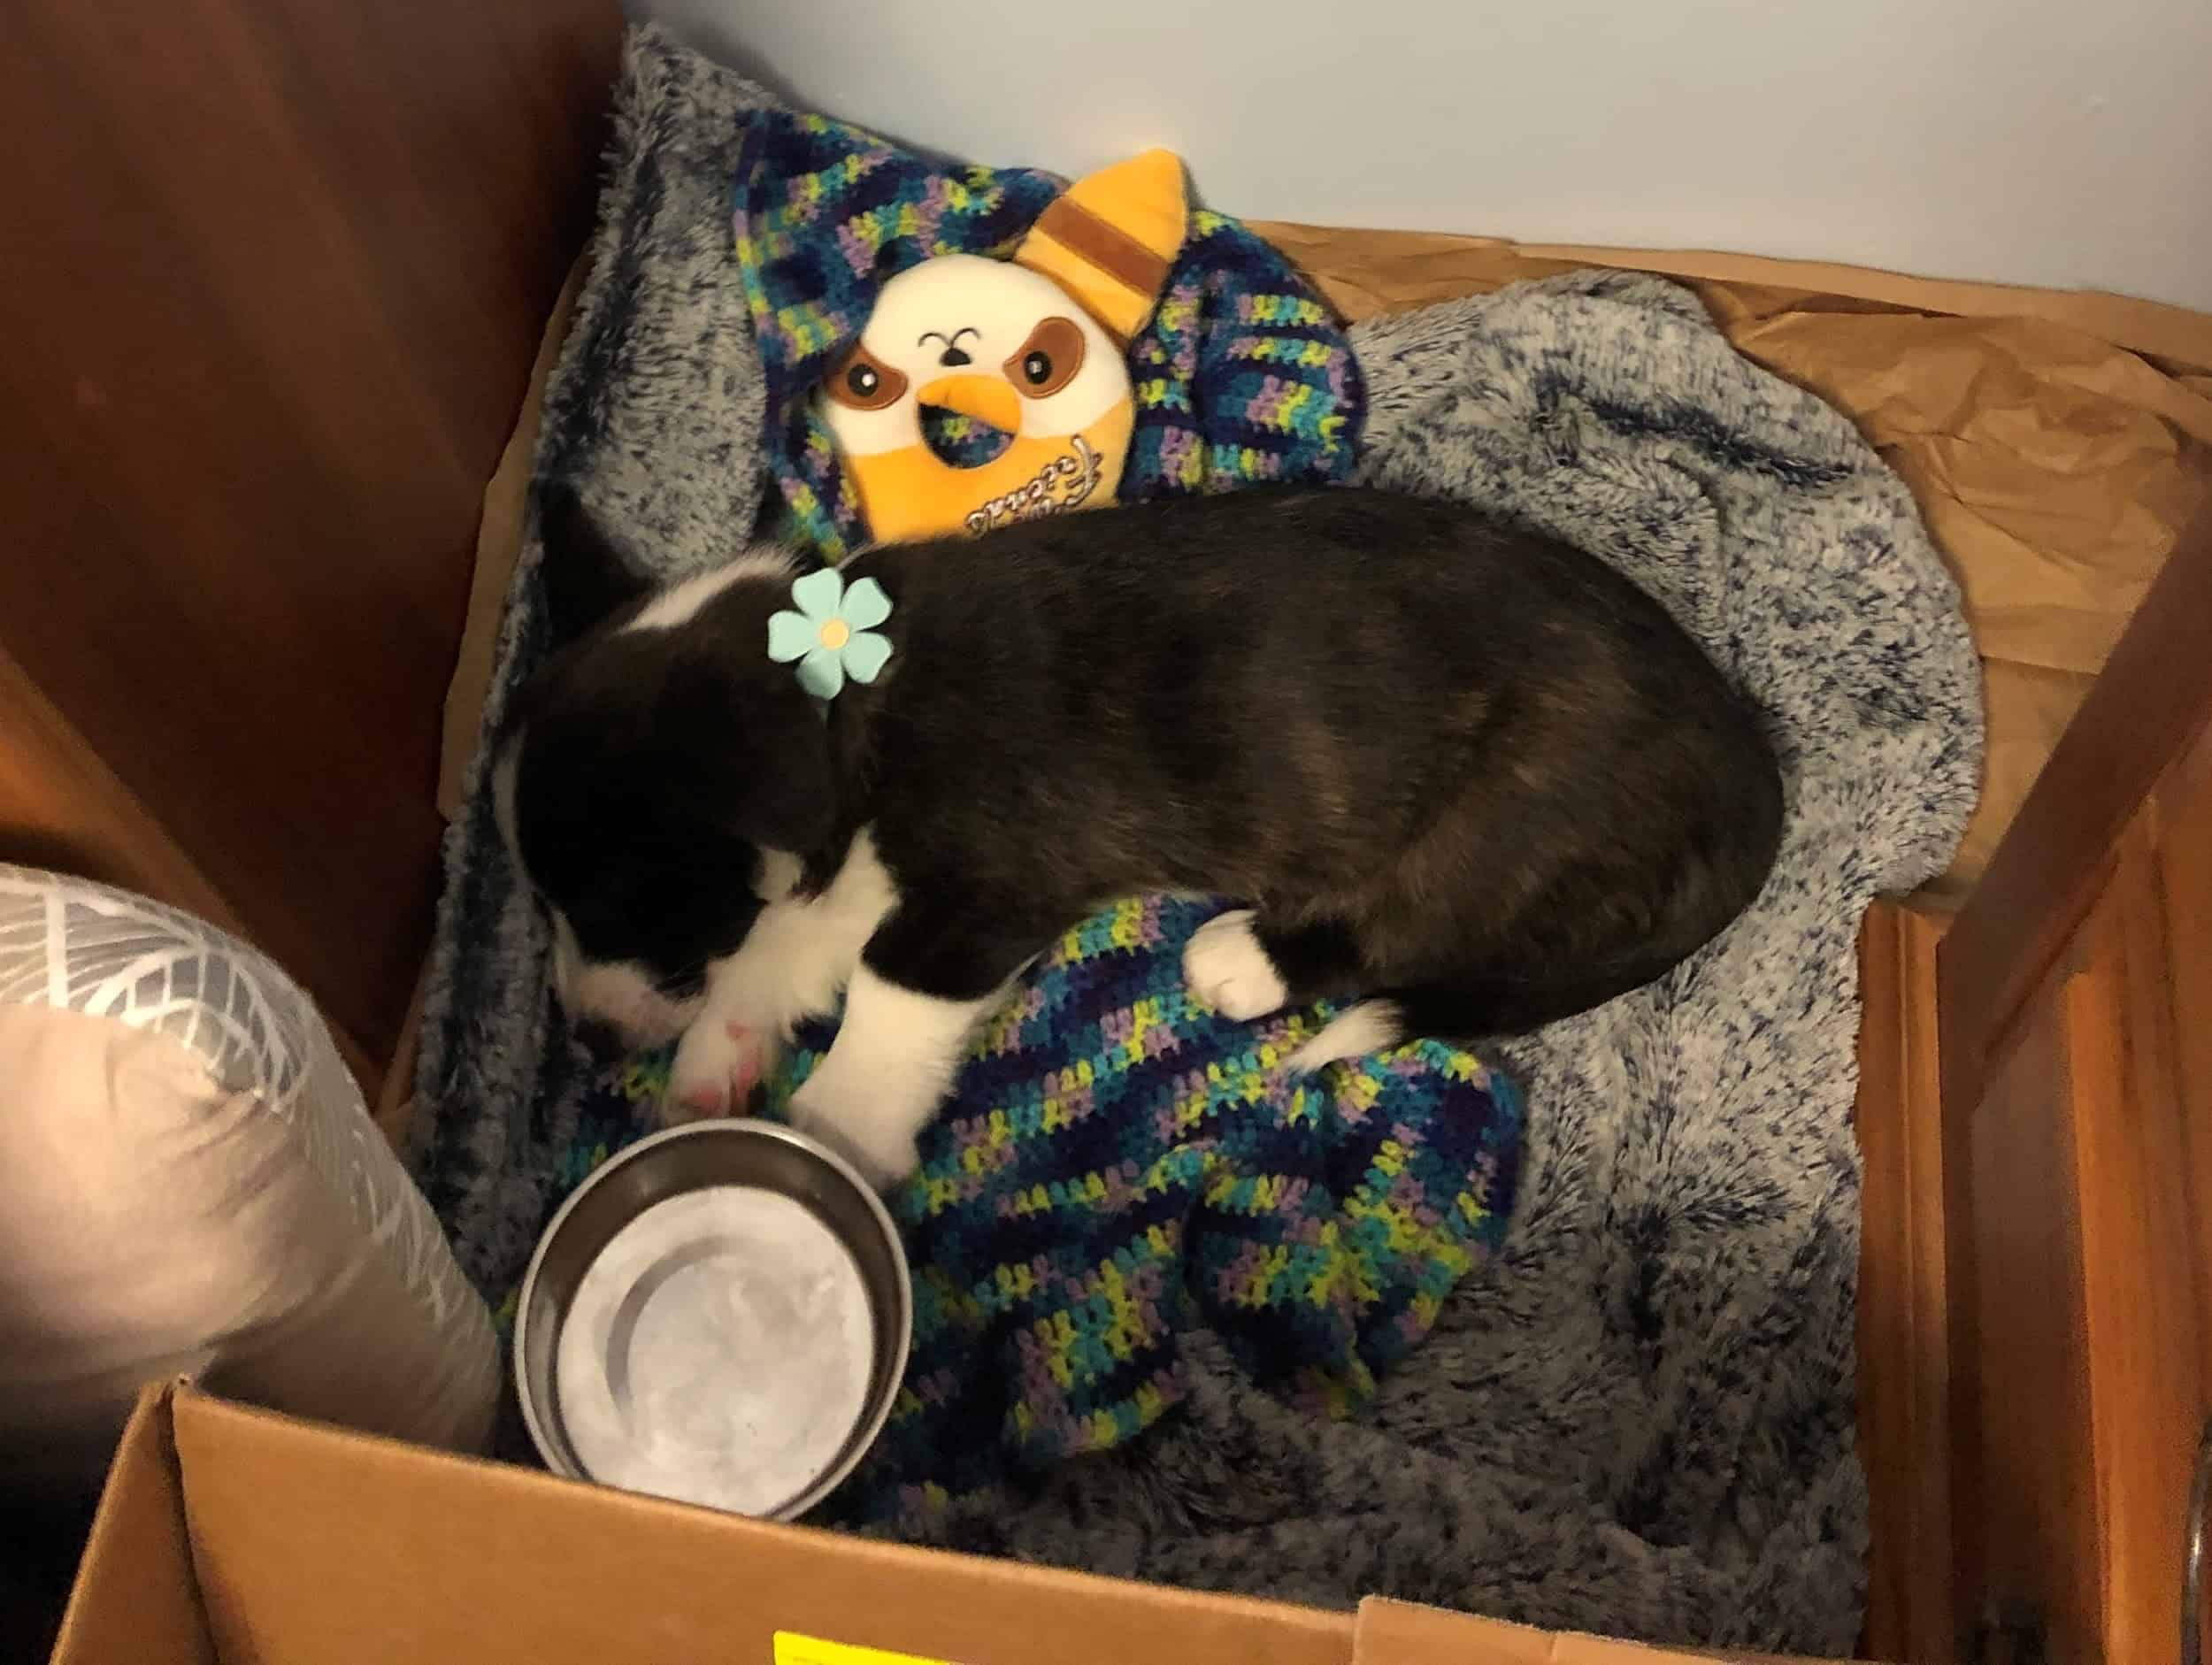 2 month old puppy sleeping soundly in its cozy, custom-made 'bedroom'